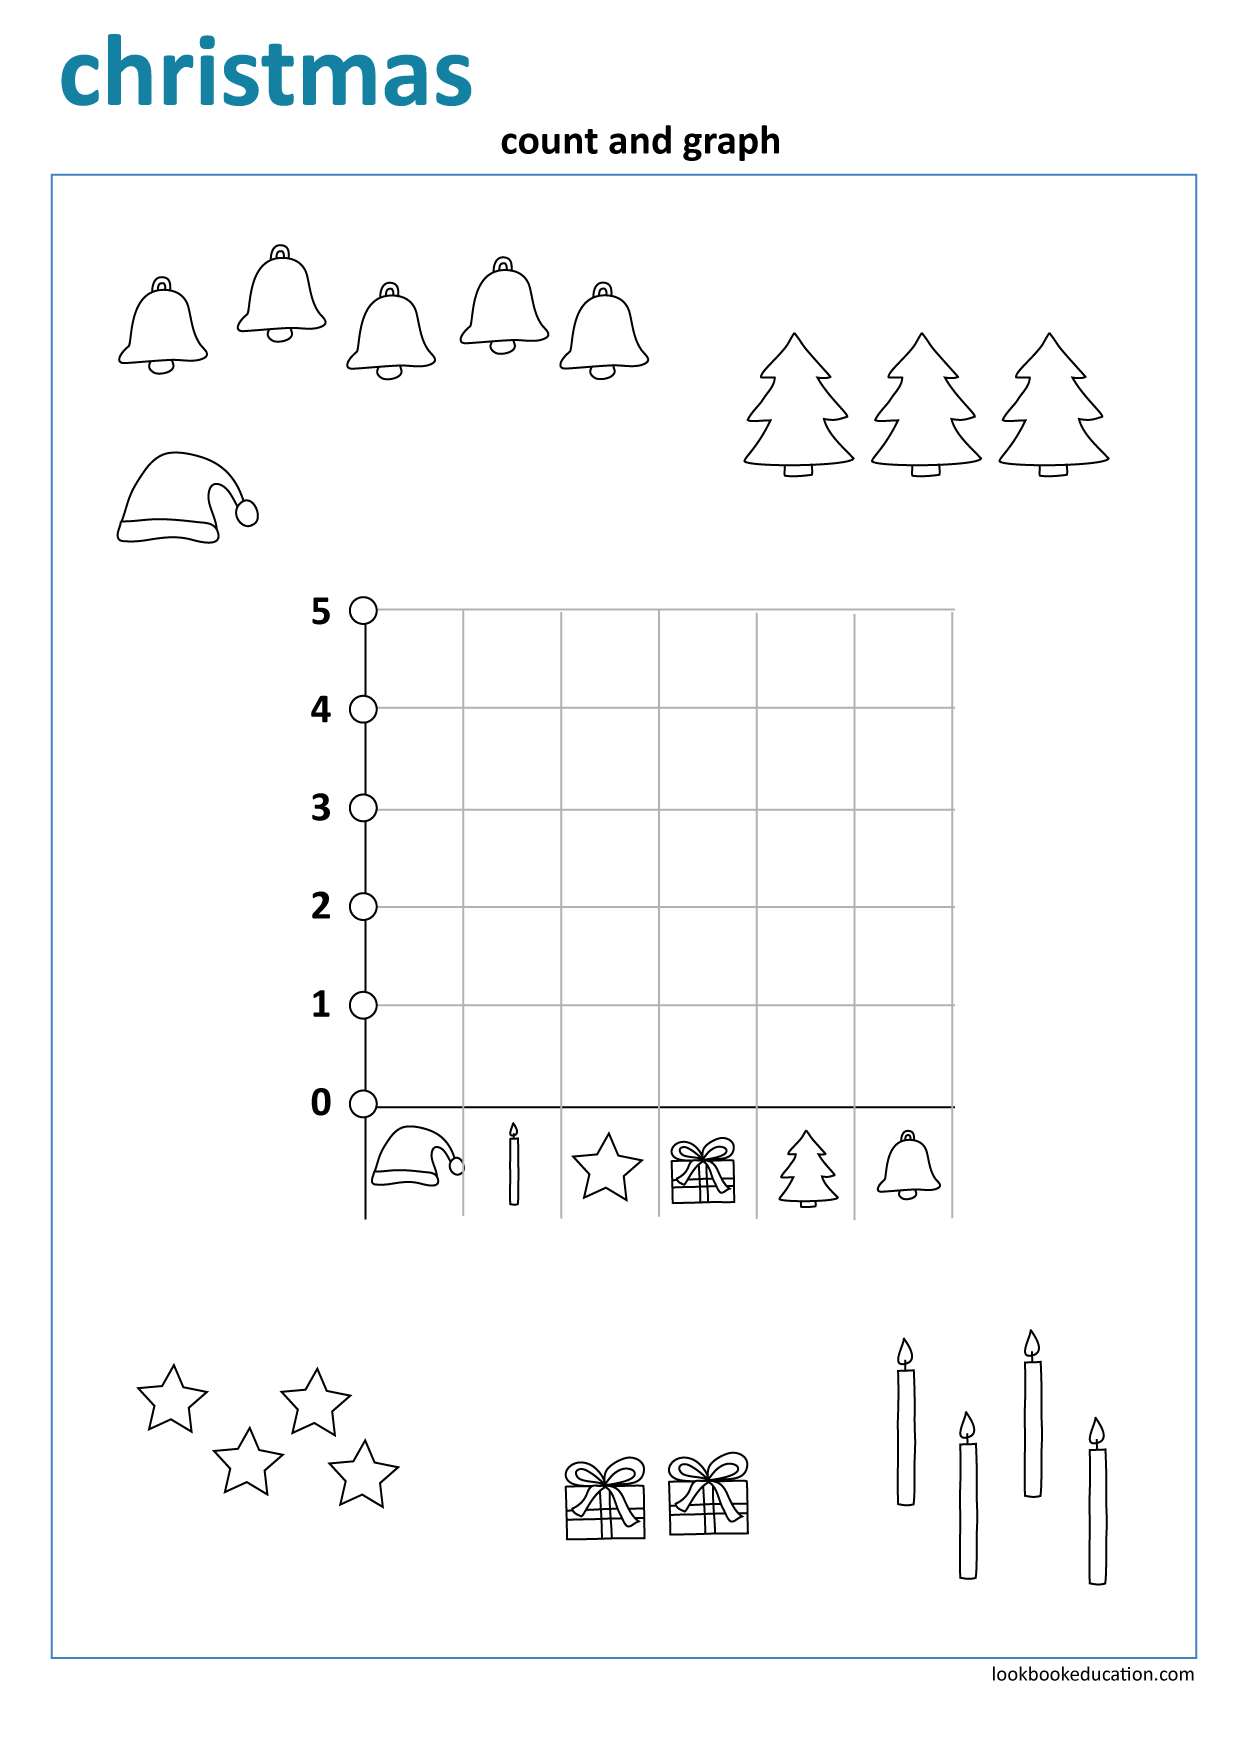 Worksheet Christmas Count Graph Worksheets Graphing First Grade Worksheets [ 1756 x 1242 Pixel ]